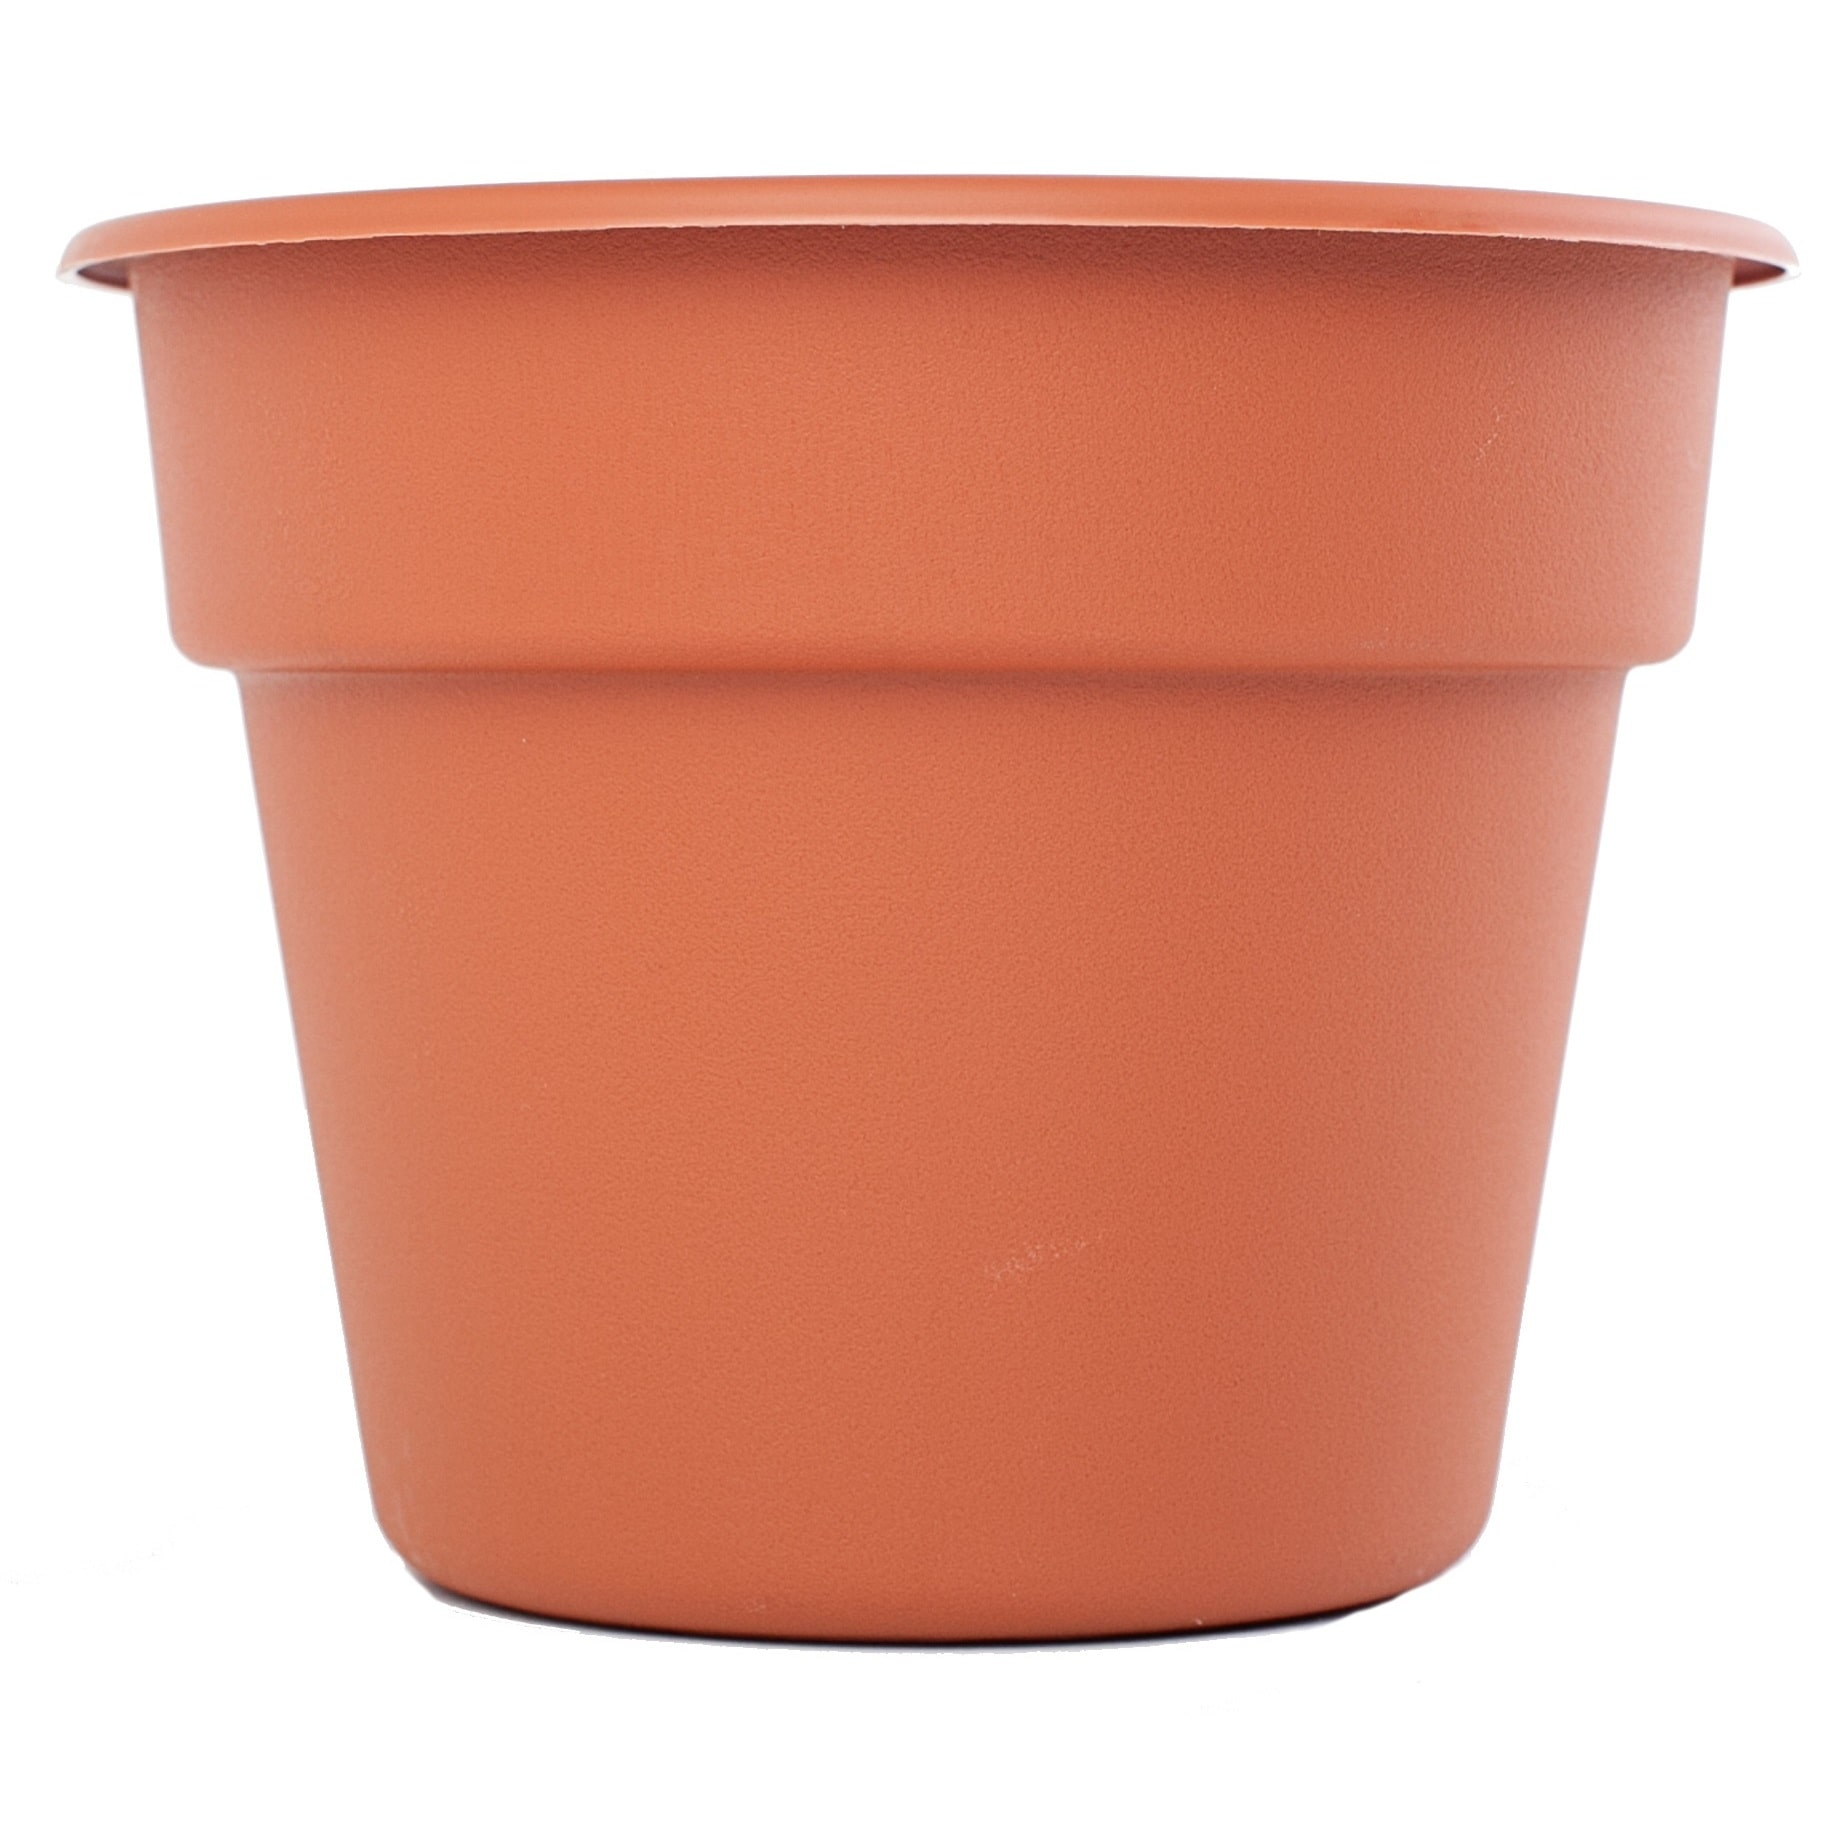 Bloem  Dura Cotta Terra Cotta Planter (Pack of 6)